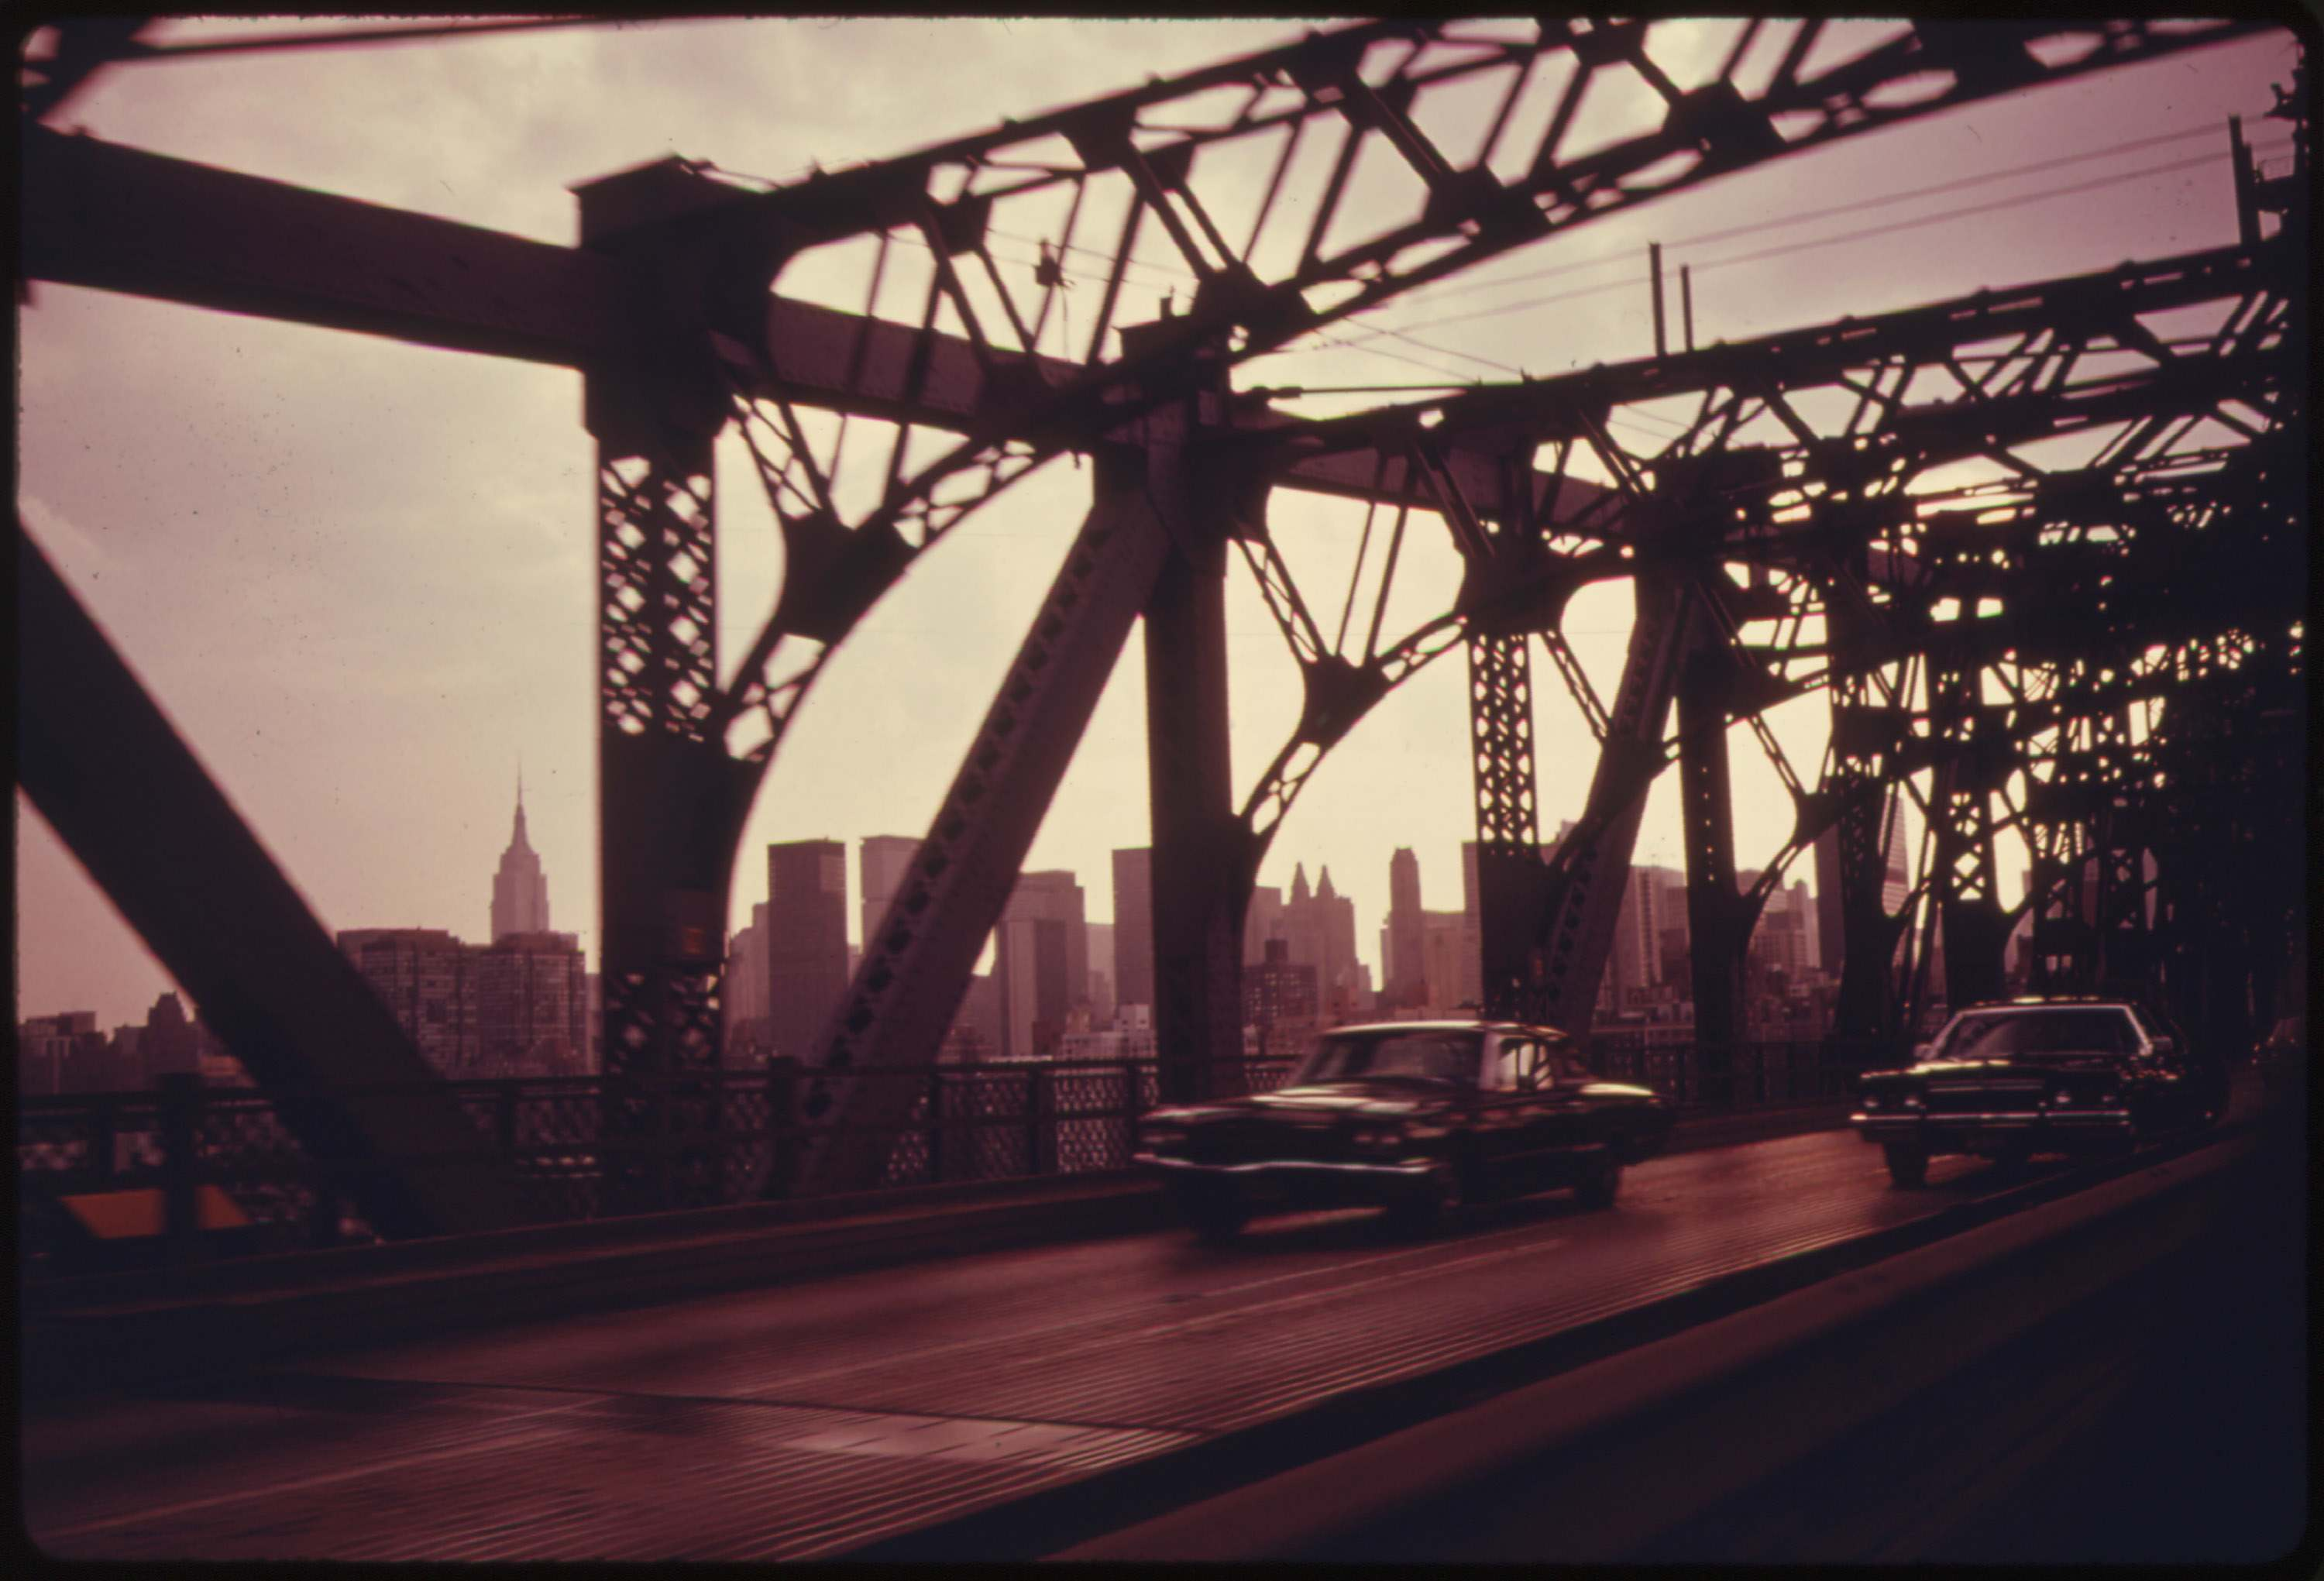 Williamsburg Bridge facing towards Manhattan, July 1974.